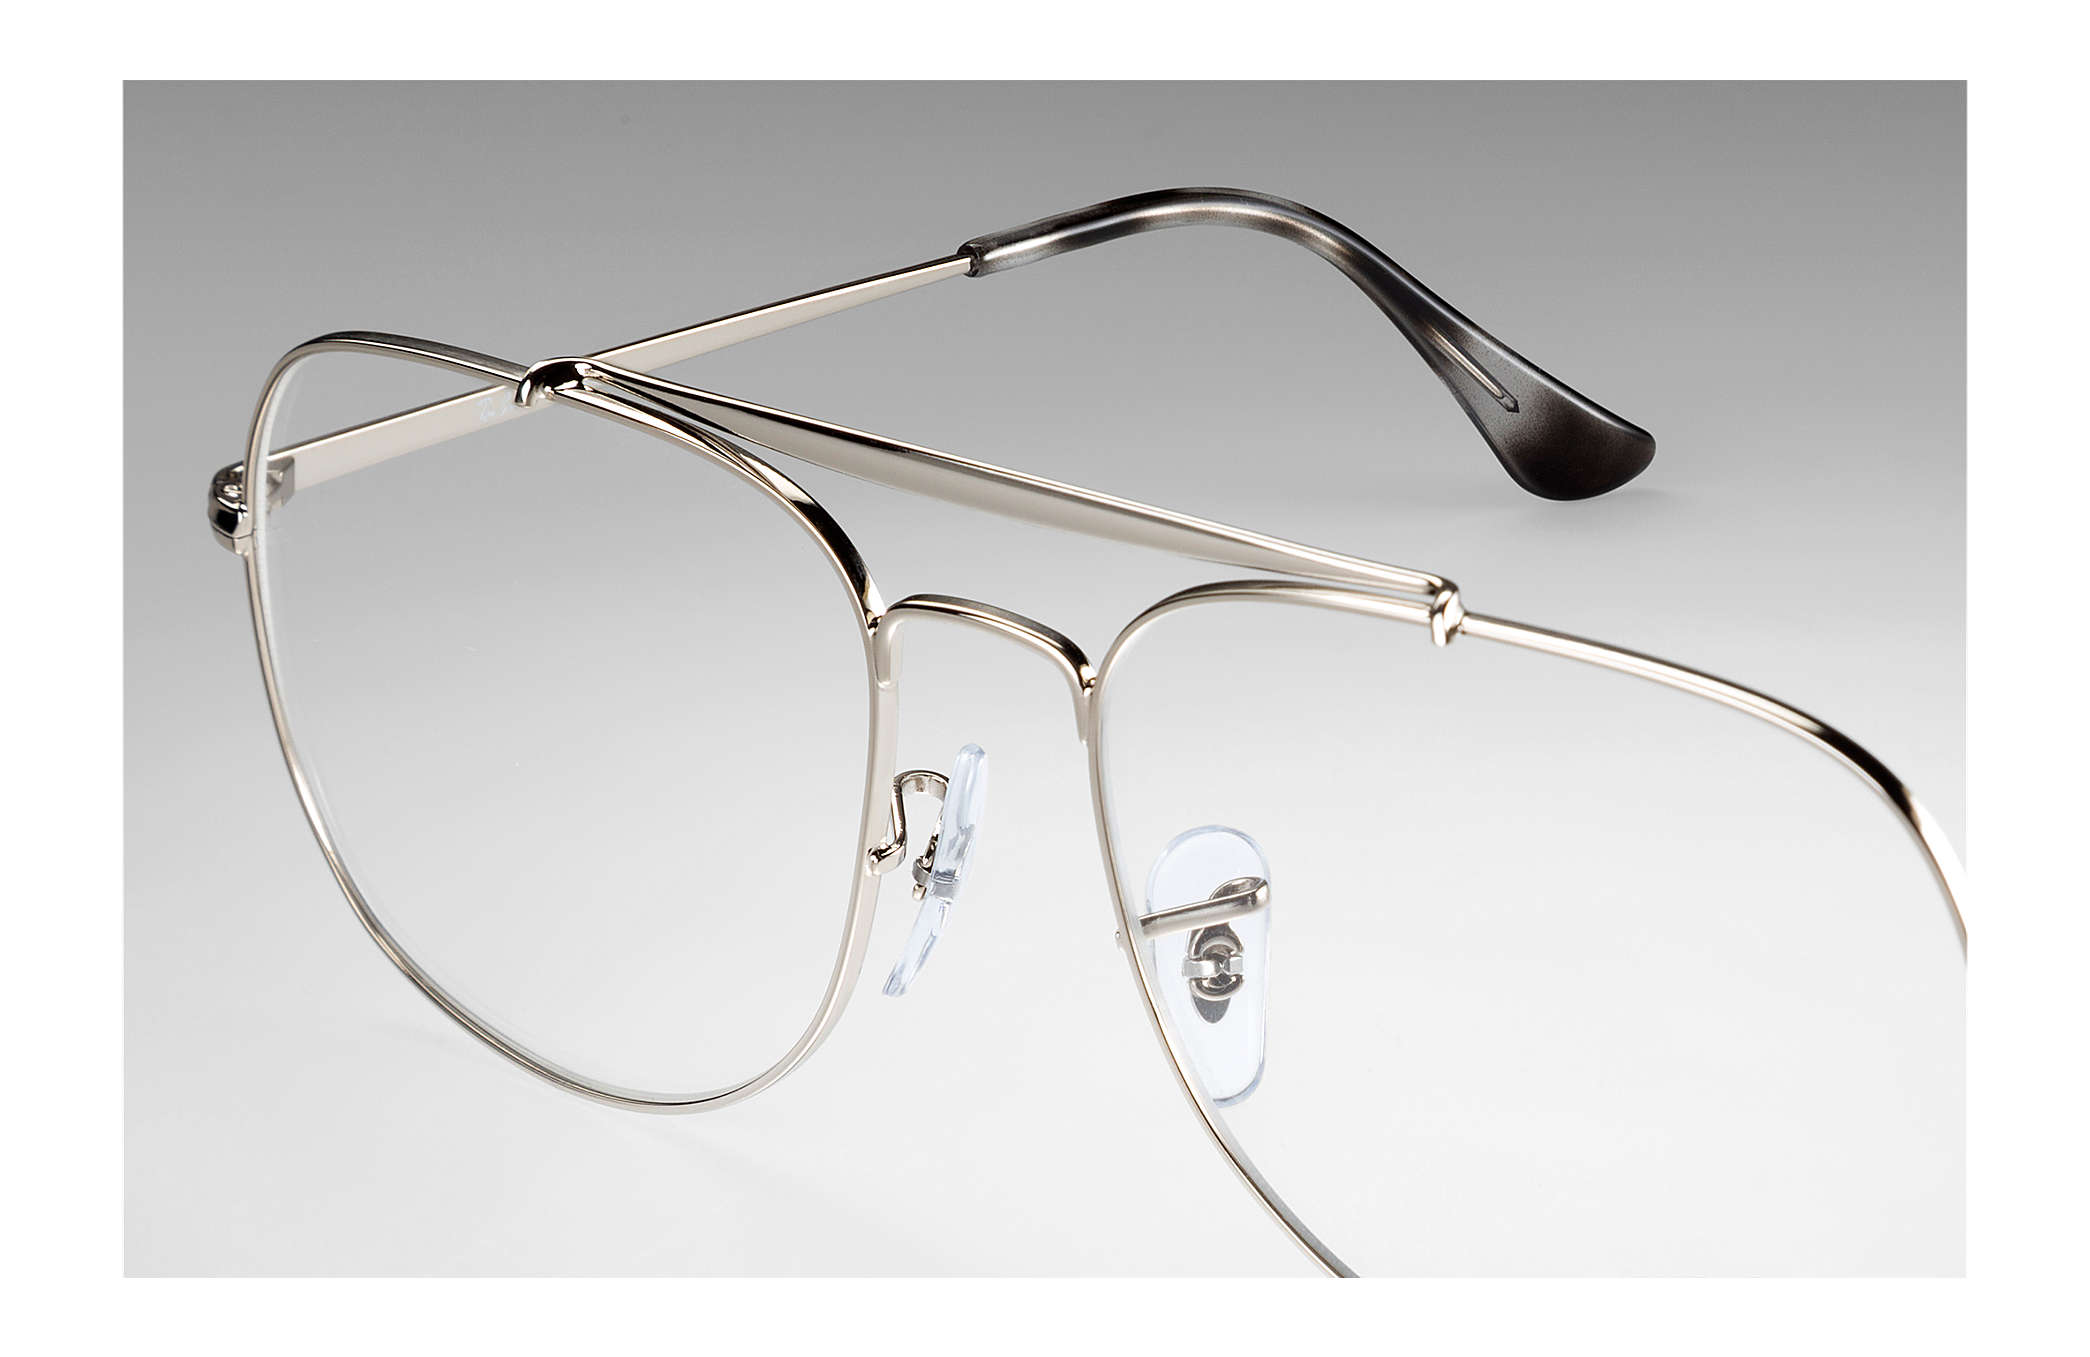 d7ae45baaf Ray-Ban eyeglasses General Optics RB6389 Silver - Metal ...